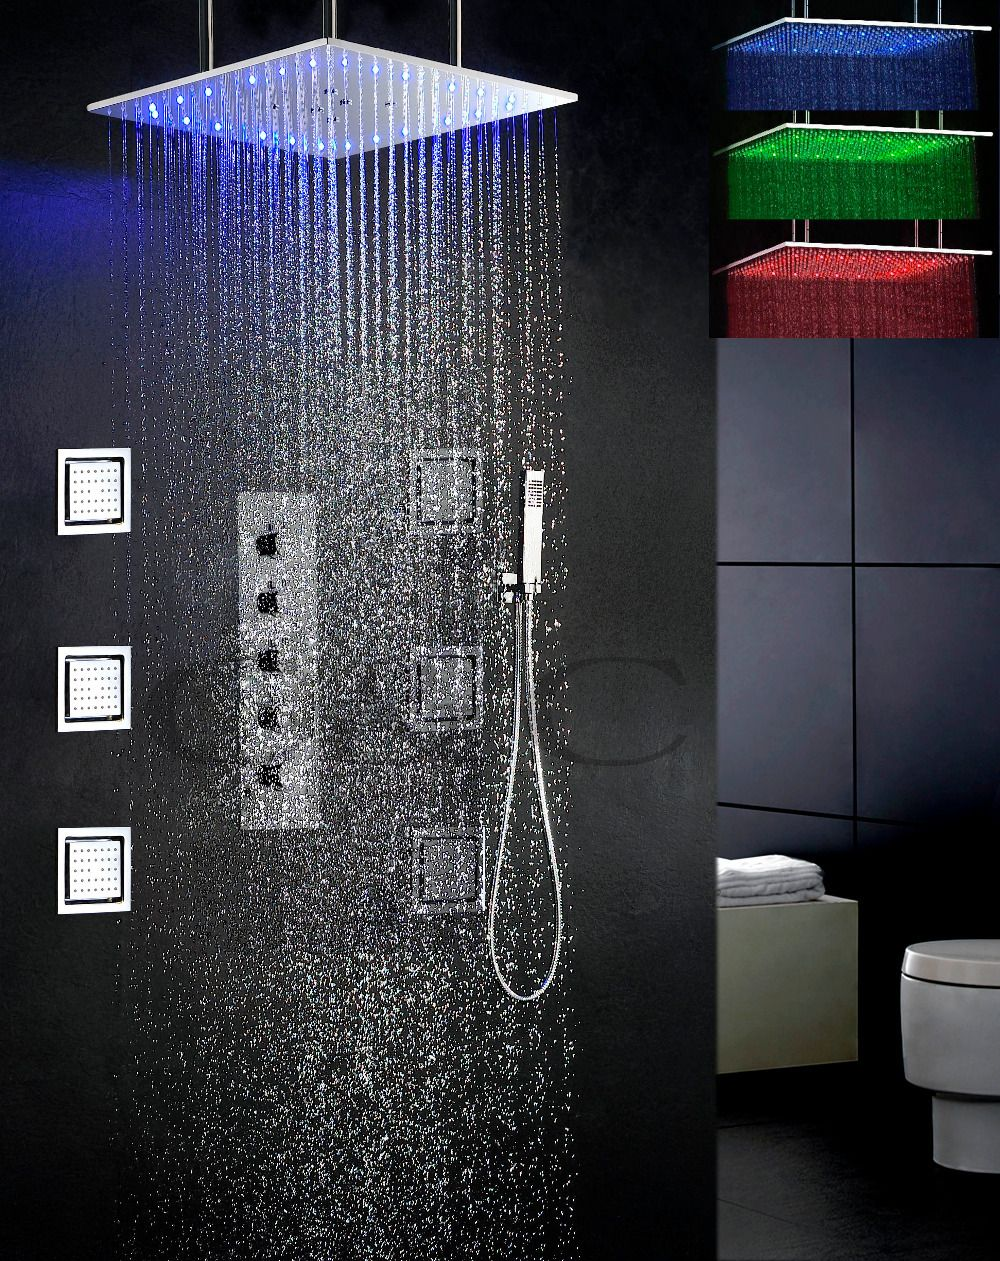 Swash And Rain Bathroom Led Shower Set 4 Water Functions Work Together Or Separately 20 Inch 3 Colors Le Shower Faucet Sets Shower Faucet Bathroom Shower Heads [ 1261 x 1000 Pixel ]